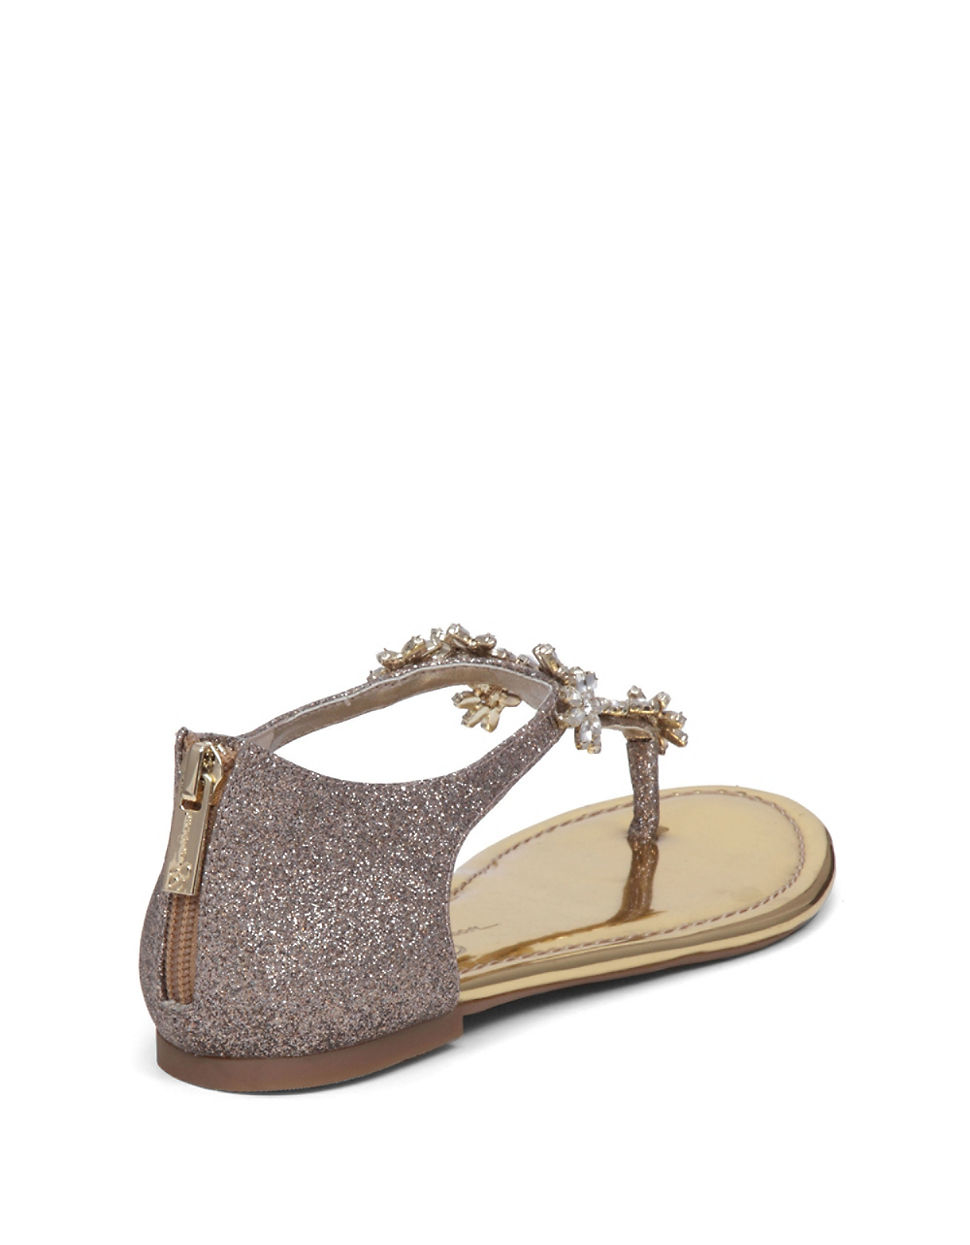 Lyst Jessica Simpson Ryler Jeweled Leather Sandals In